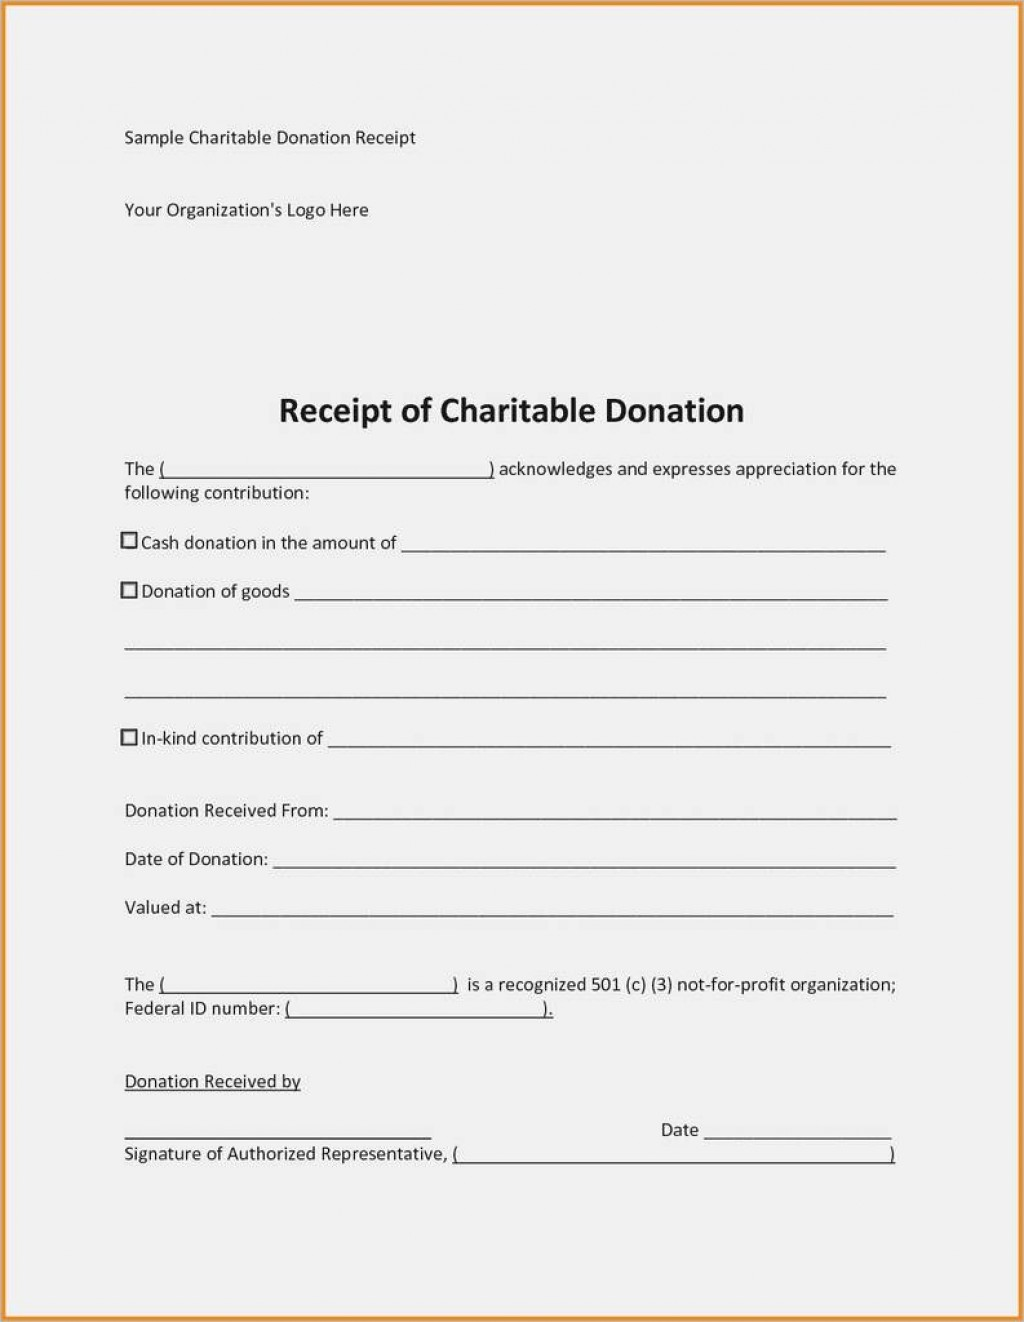 009 Formidable Tax Donation Receipt Template Design  Canadian Charitable Letter Church DeductionLarge